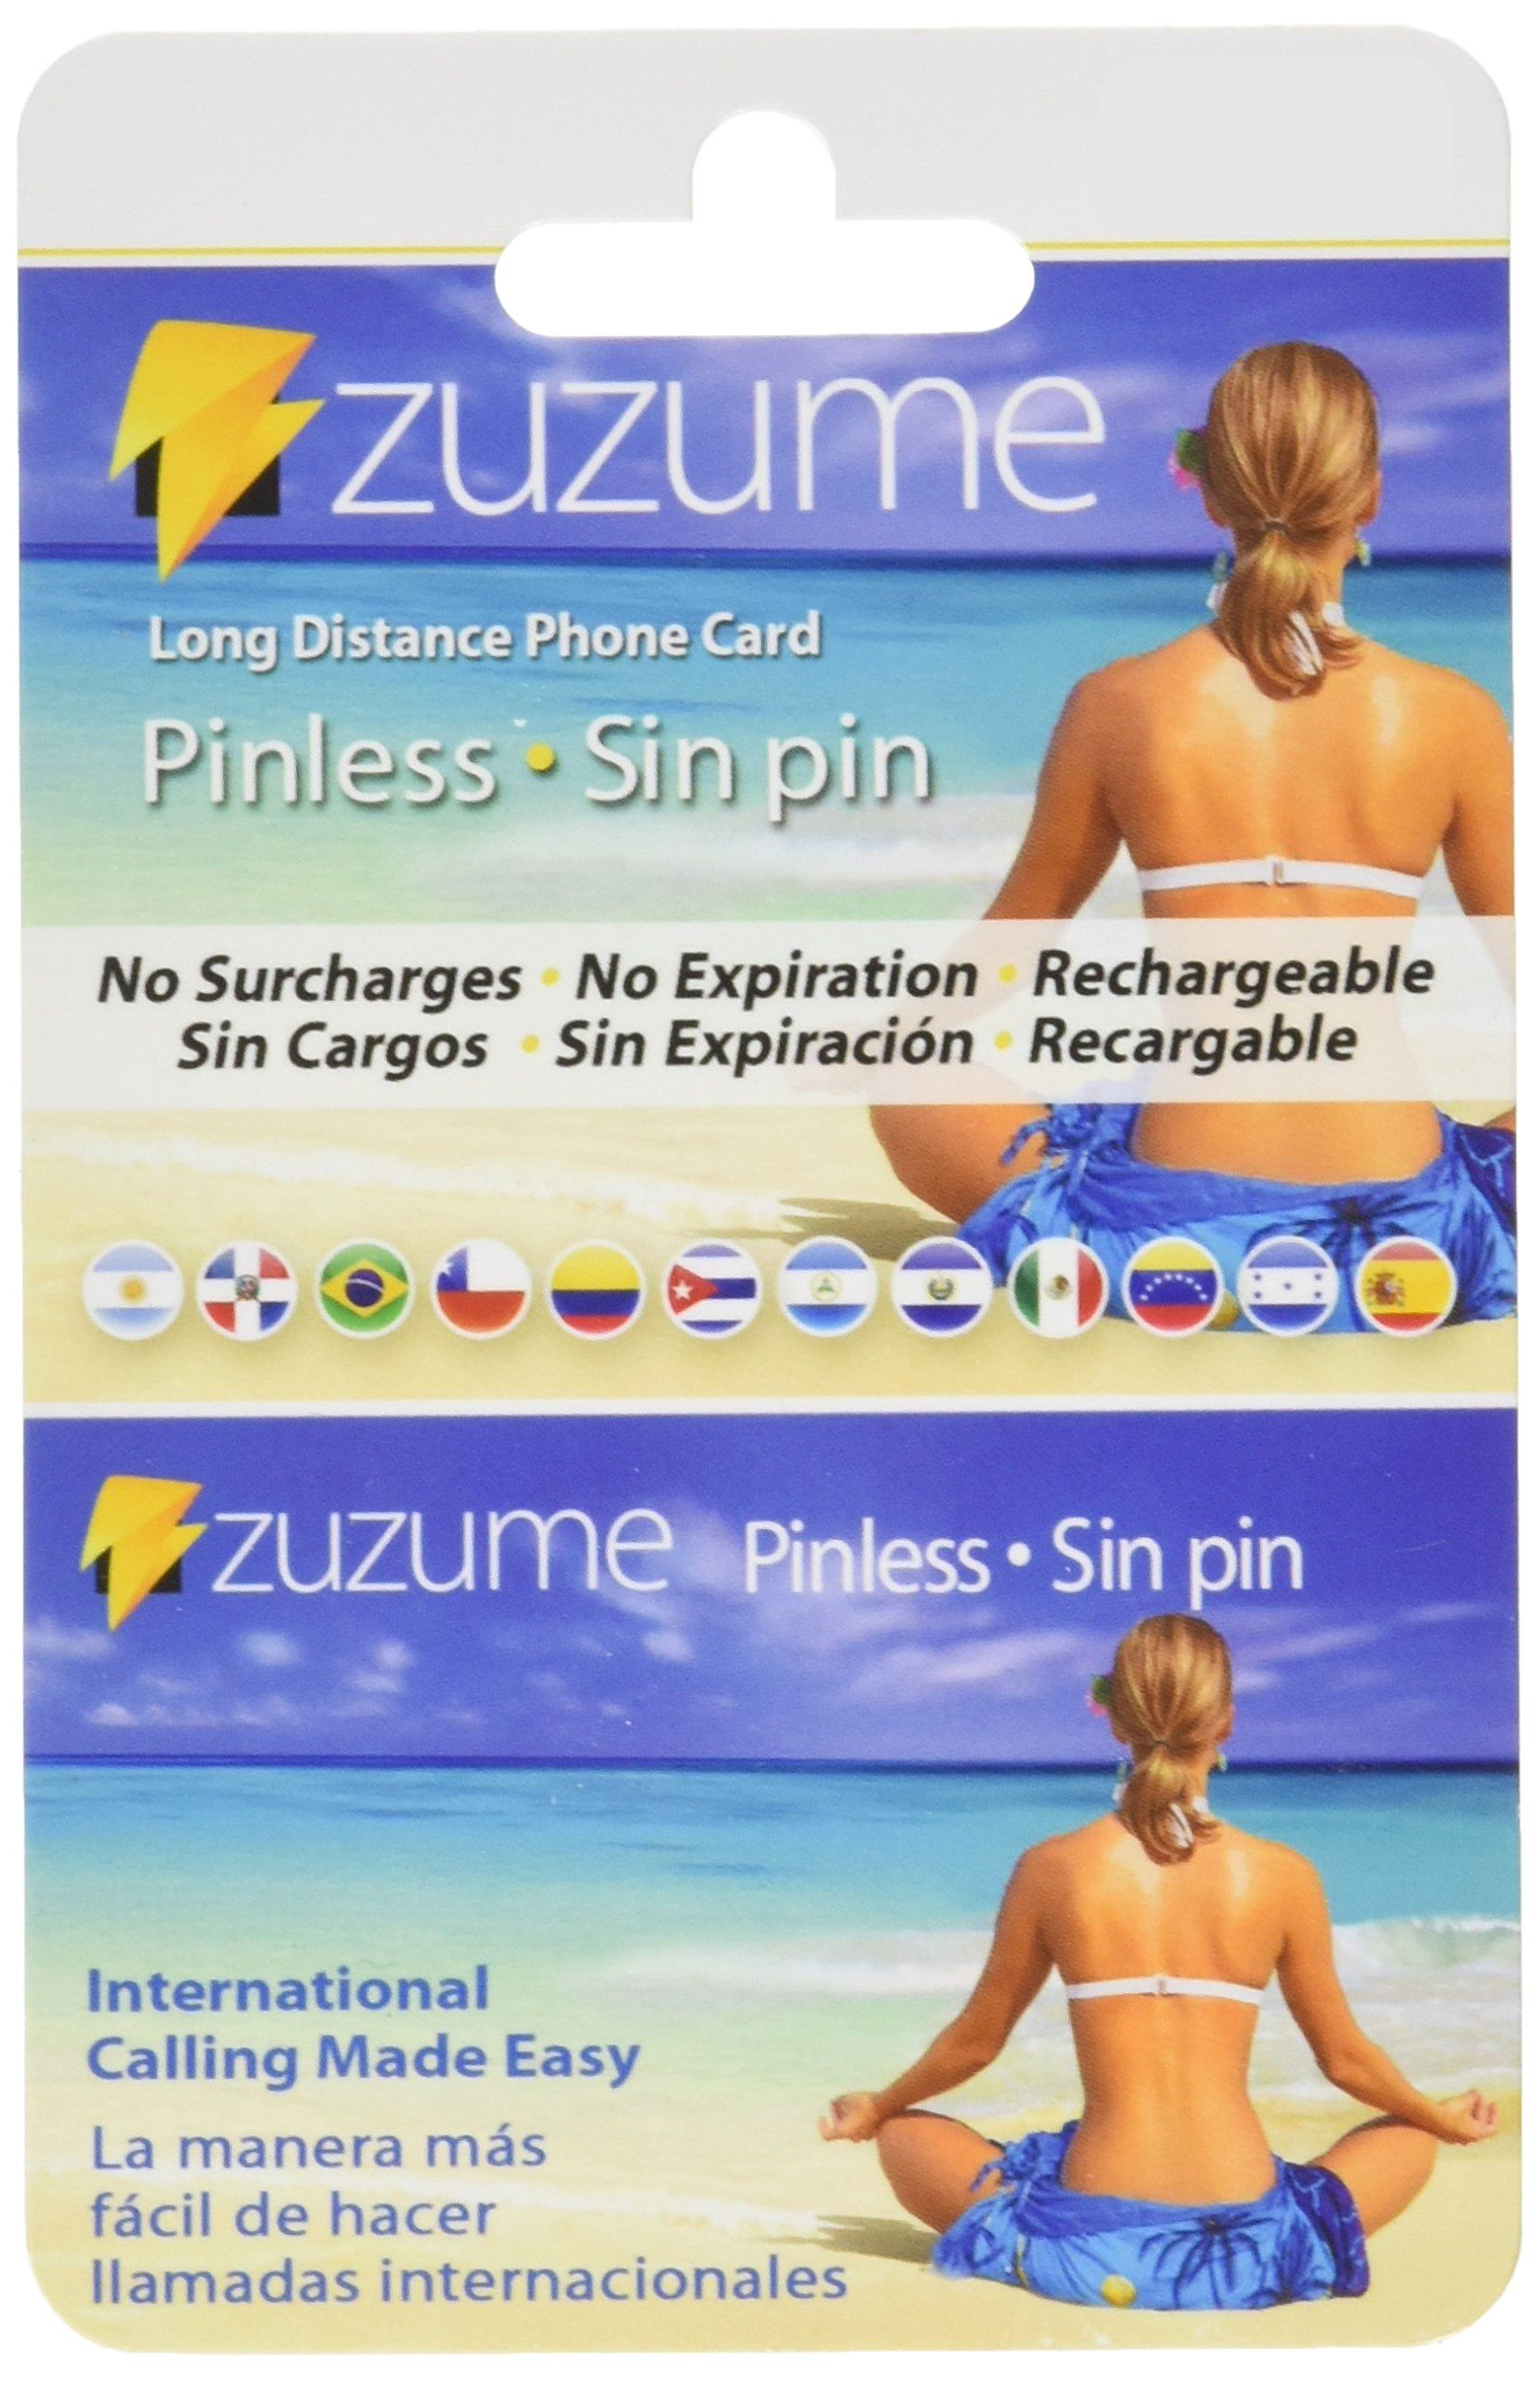 zuzume prepaid phone calling cards for cheap international long distance calls choose 510 - Prepaid Calling Cards